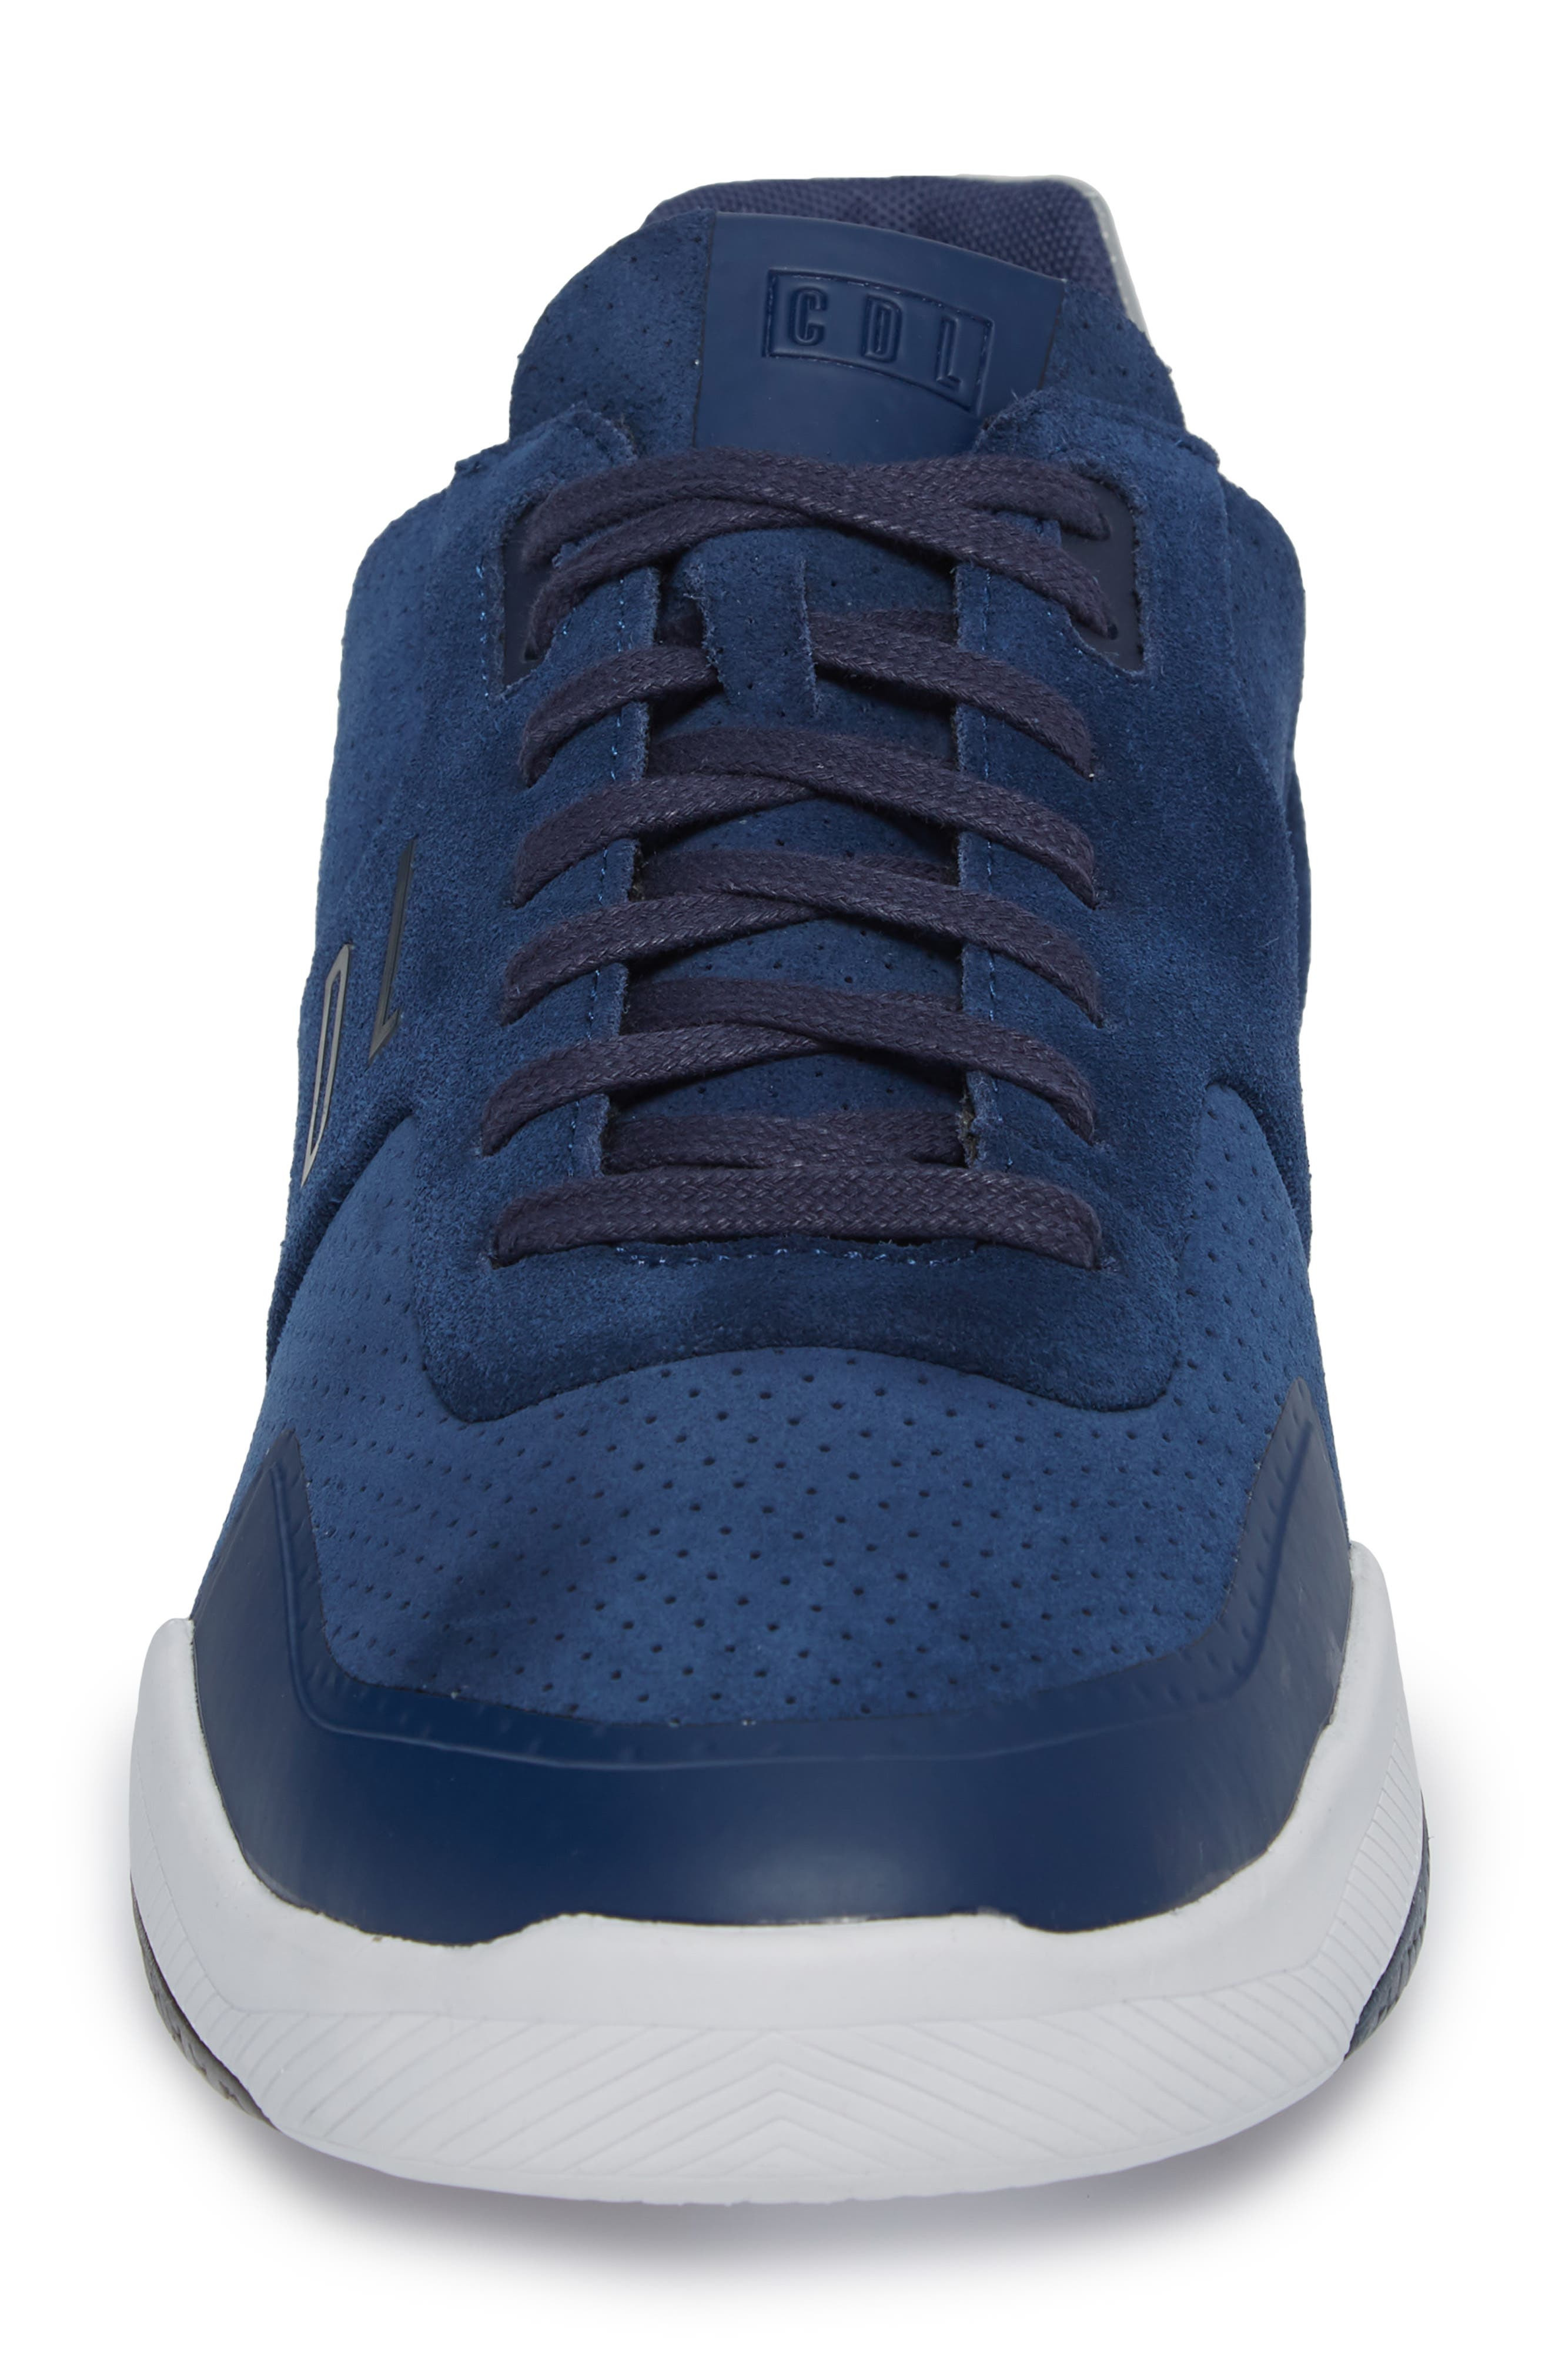 Shima Low Top Sneaker,                             Alternate thumbnail 4, color,                             NAVY SUEDE